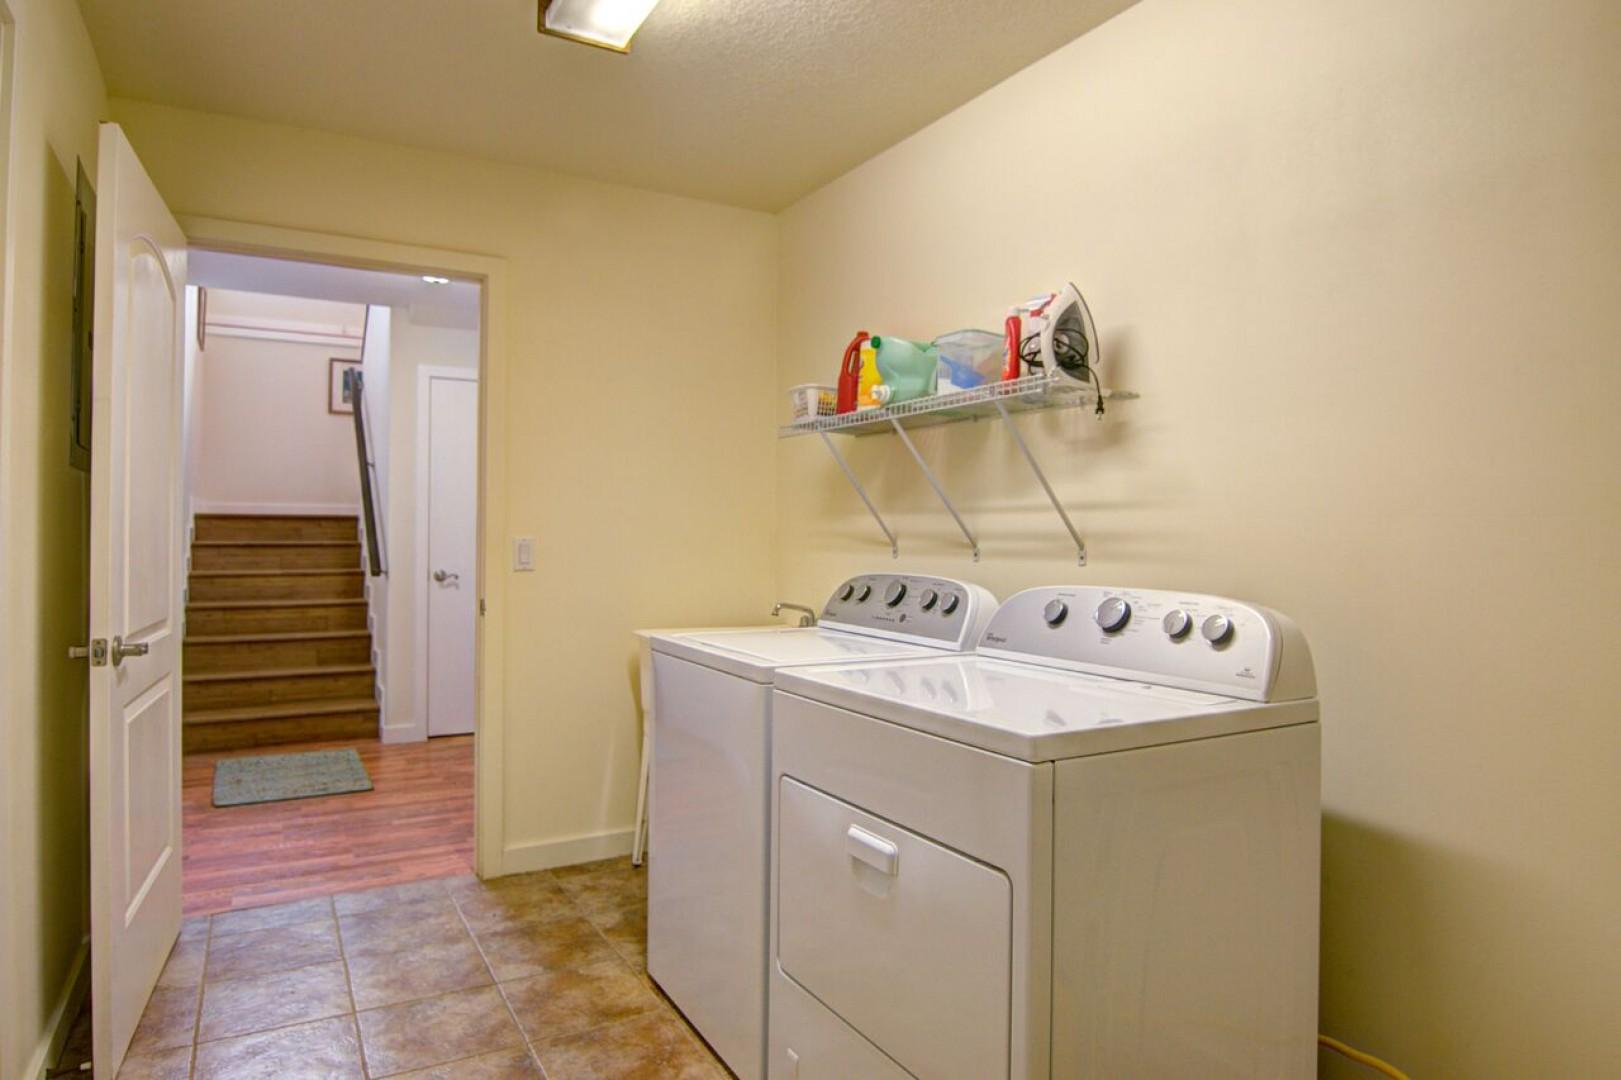 There is a laundry room downstairs for your use